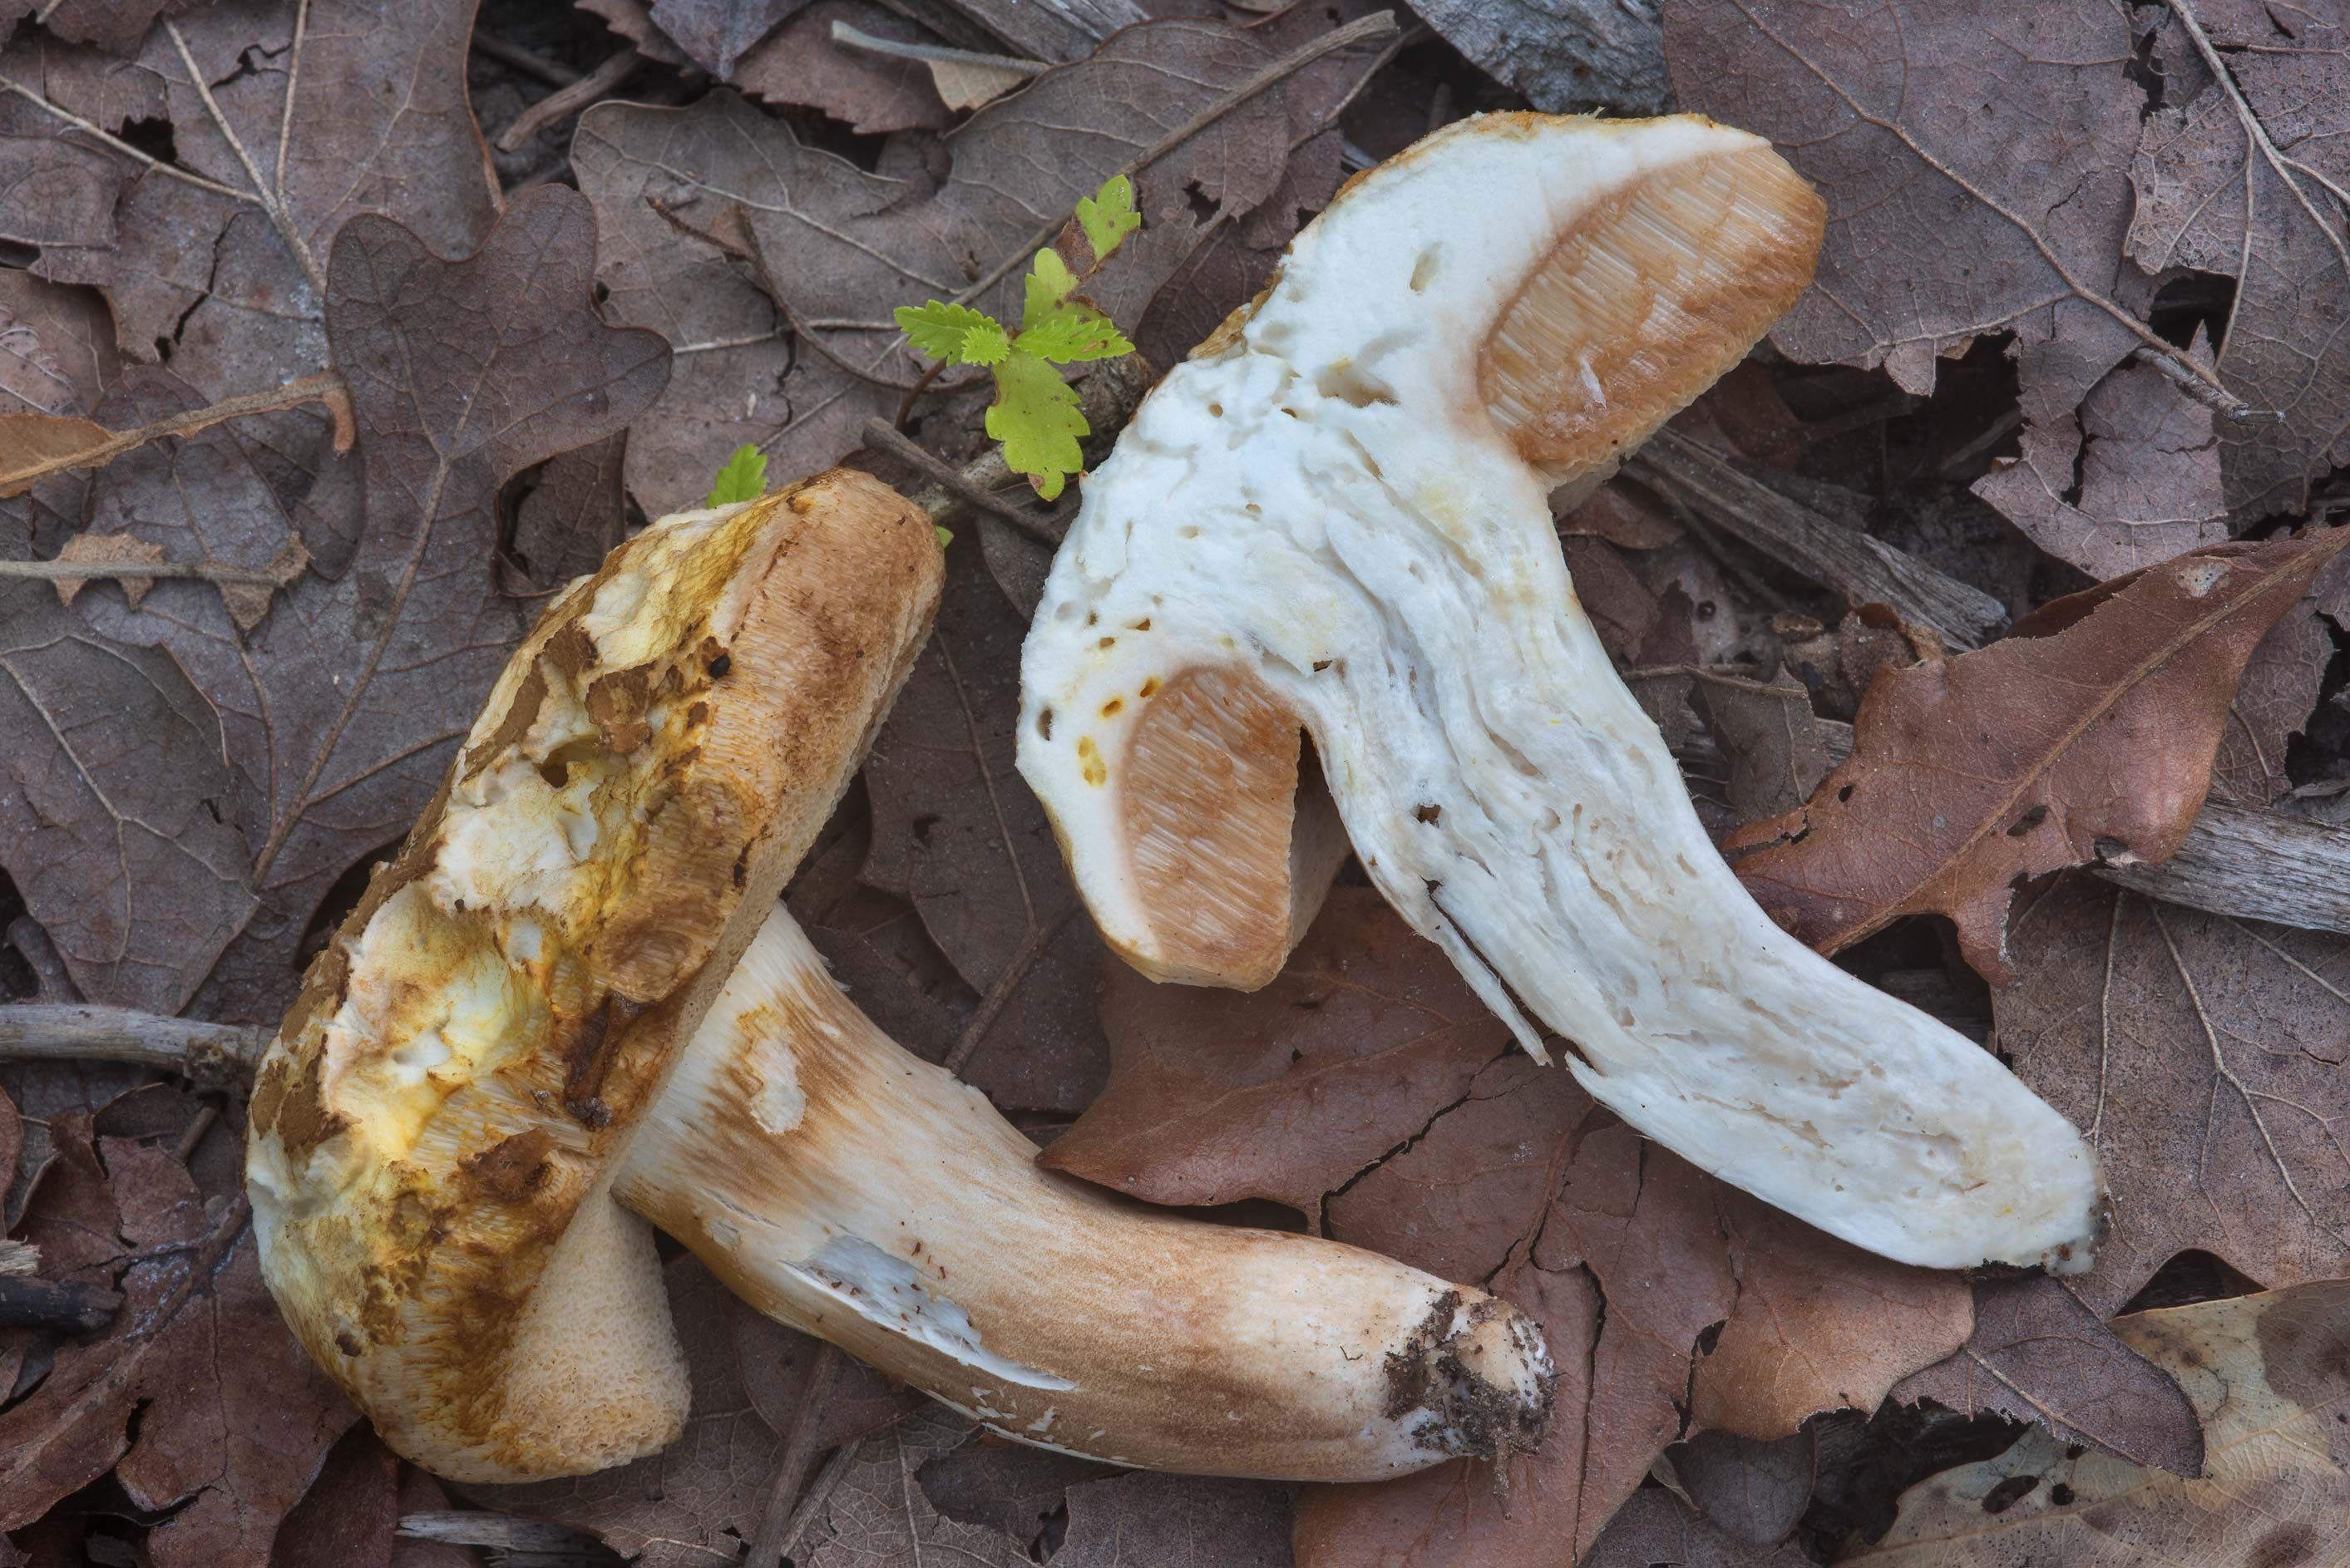 Dissected Xanthoconium affine mushroom in Lick Creek Park. College Station, Texas